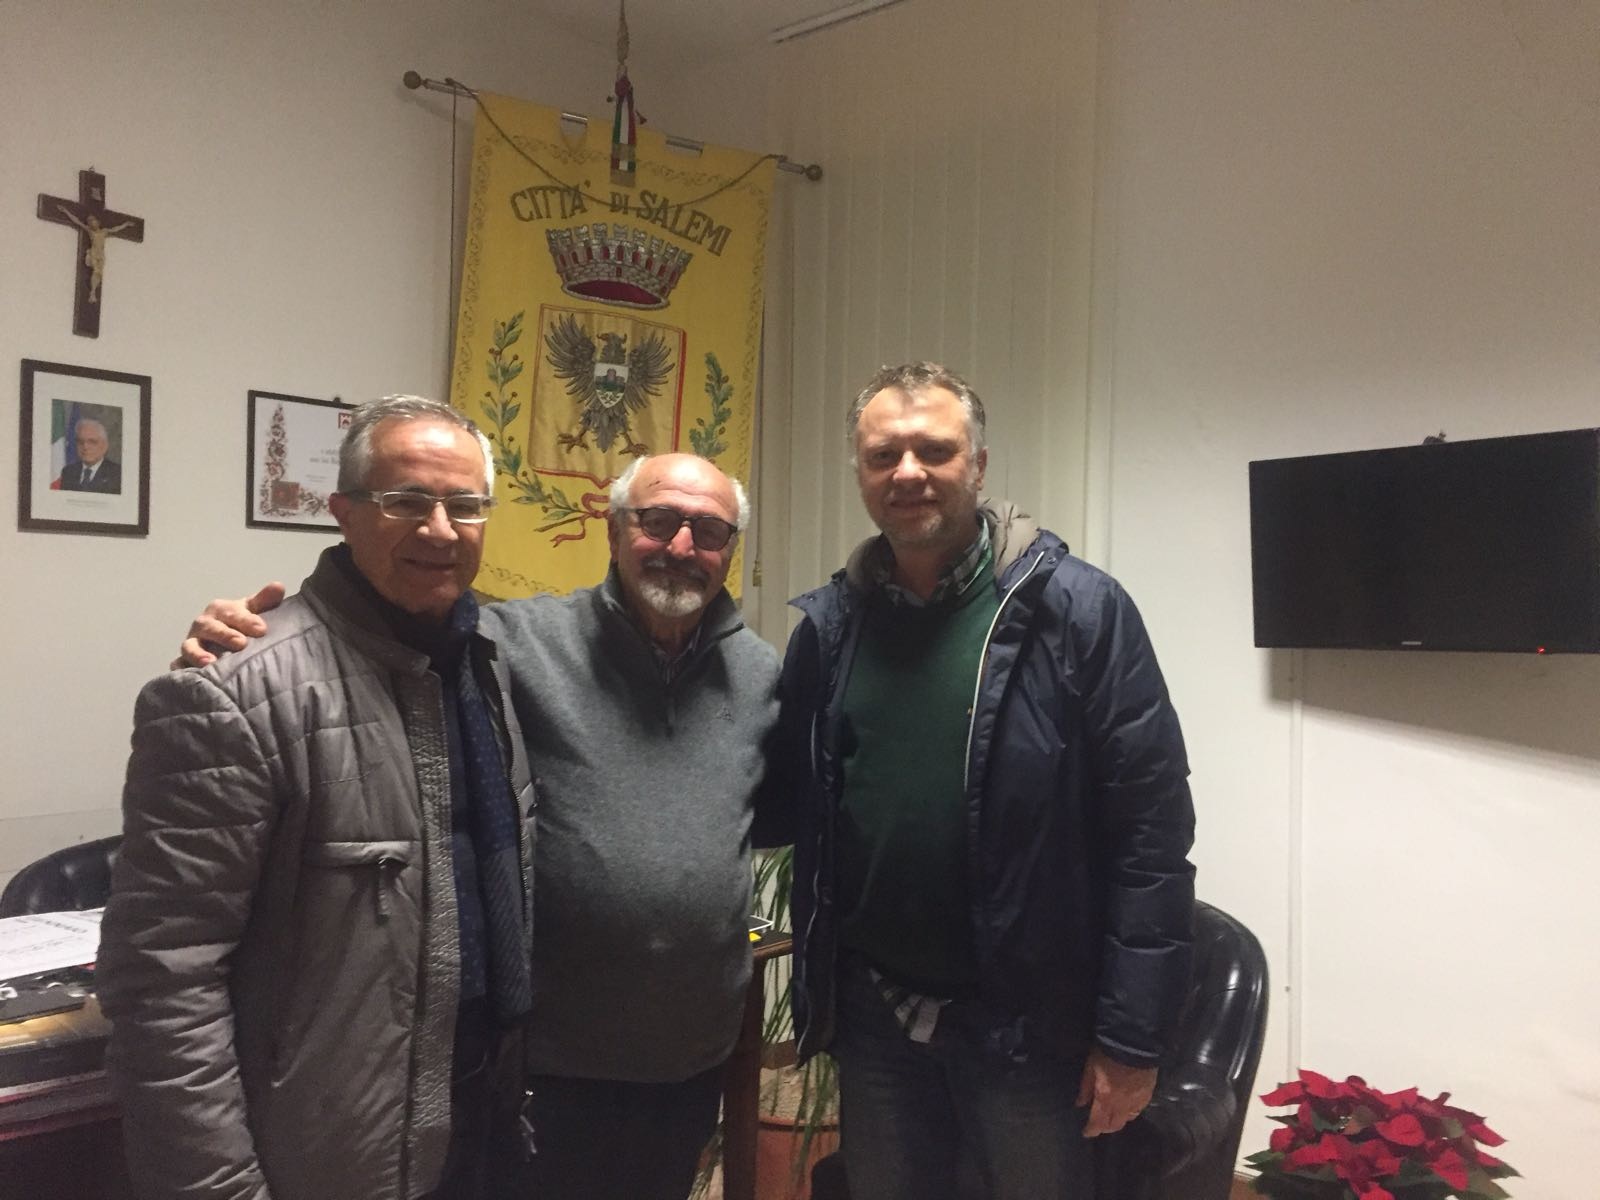 Calogero Angelo, Aldo Sessa, Vito Scalisi